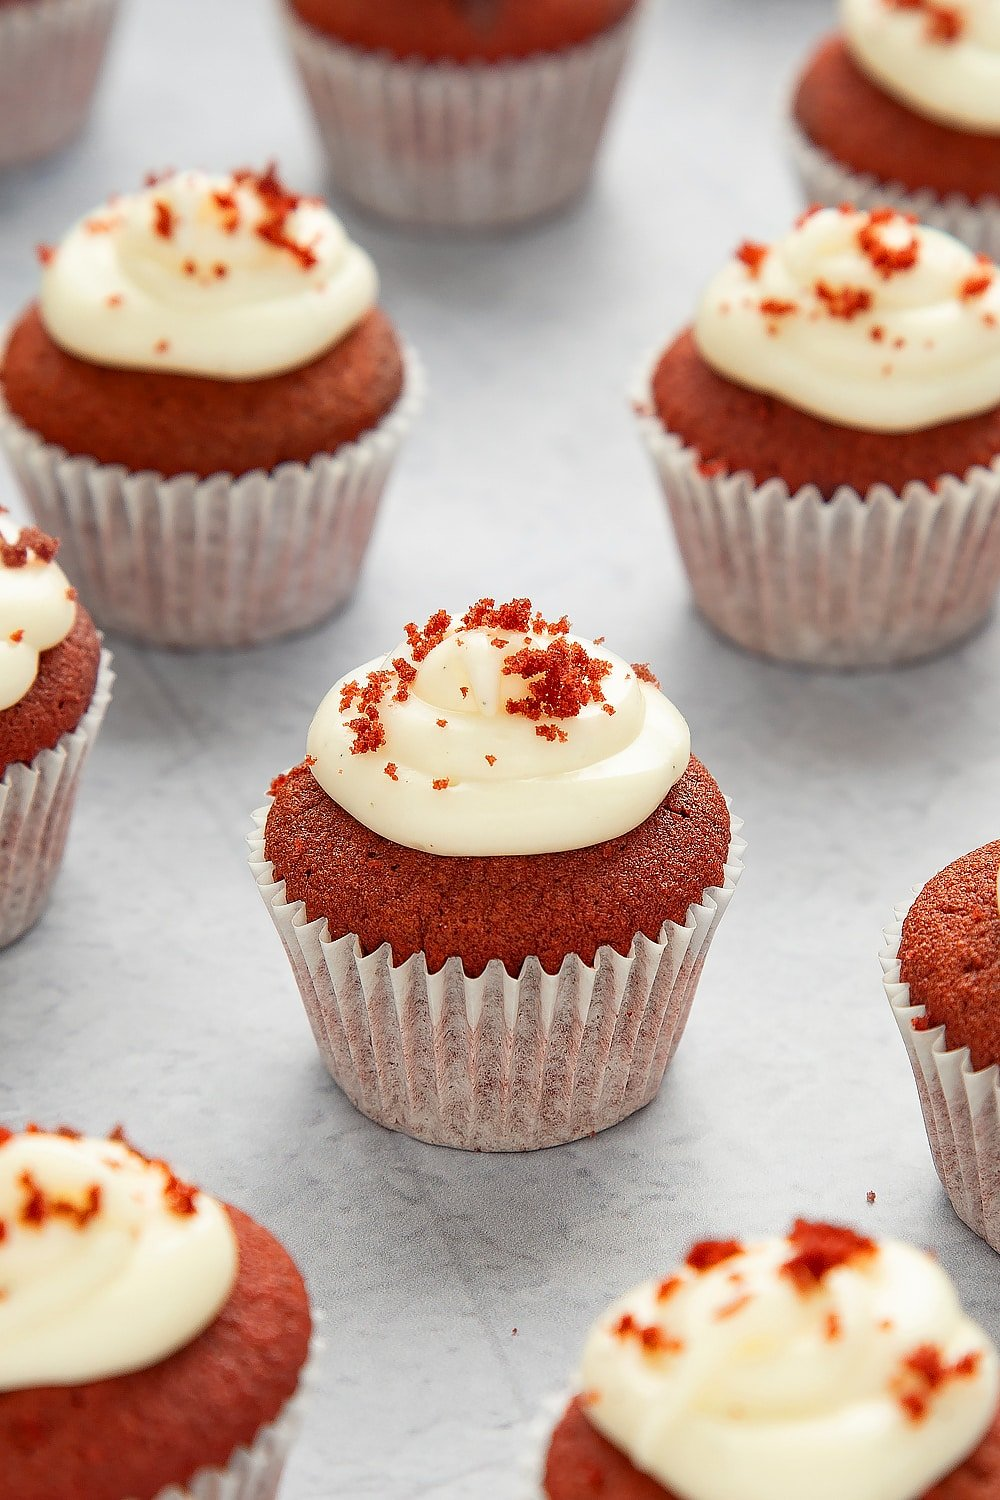 Mini red velvet cupcakes with cream cheese frosting on a grey table top.